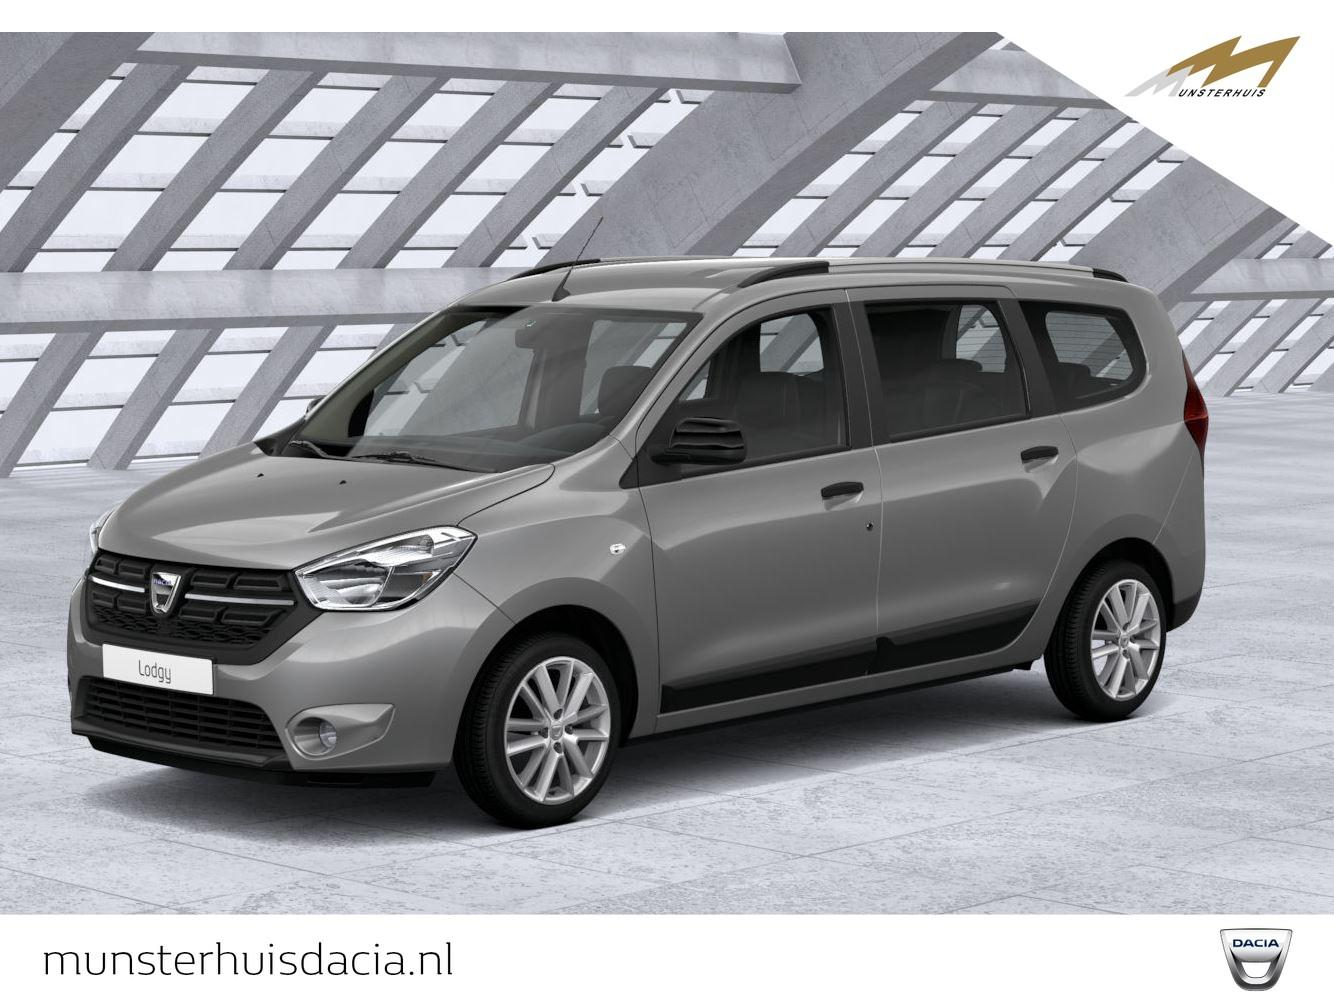 Dacia Lodgy Tce 130 comfort 7p - nieuw - 7persoons